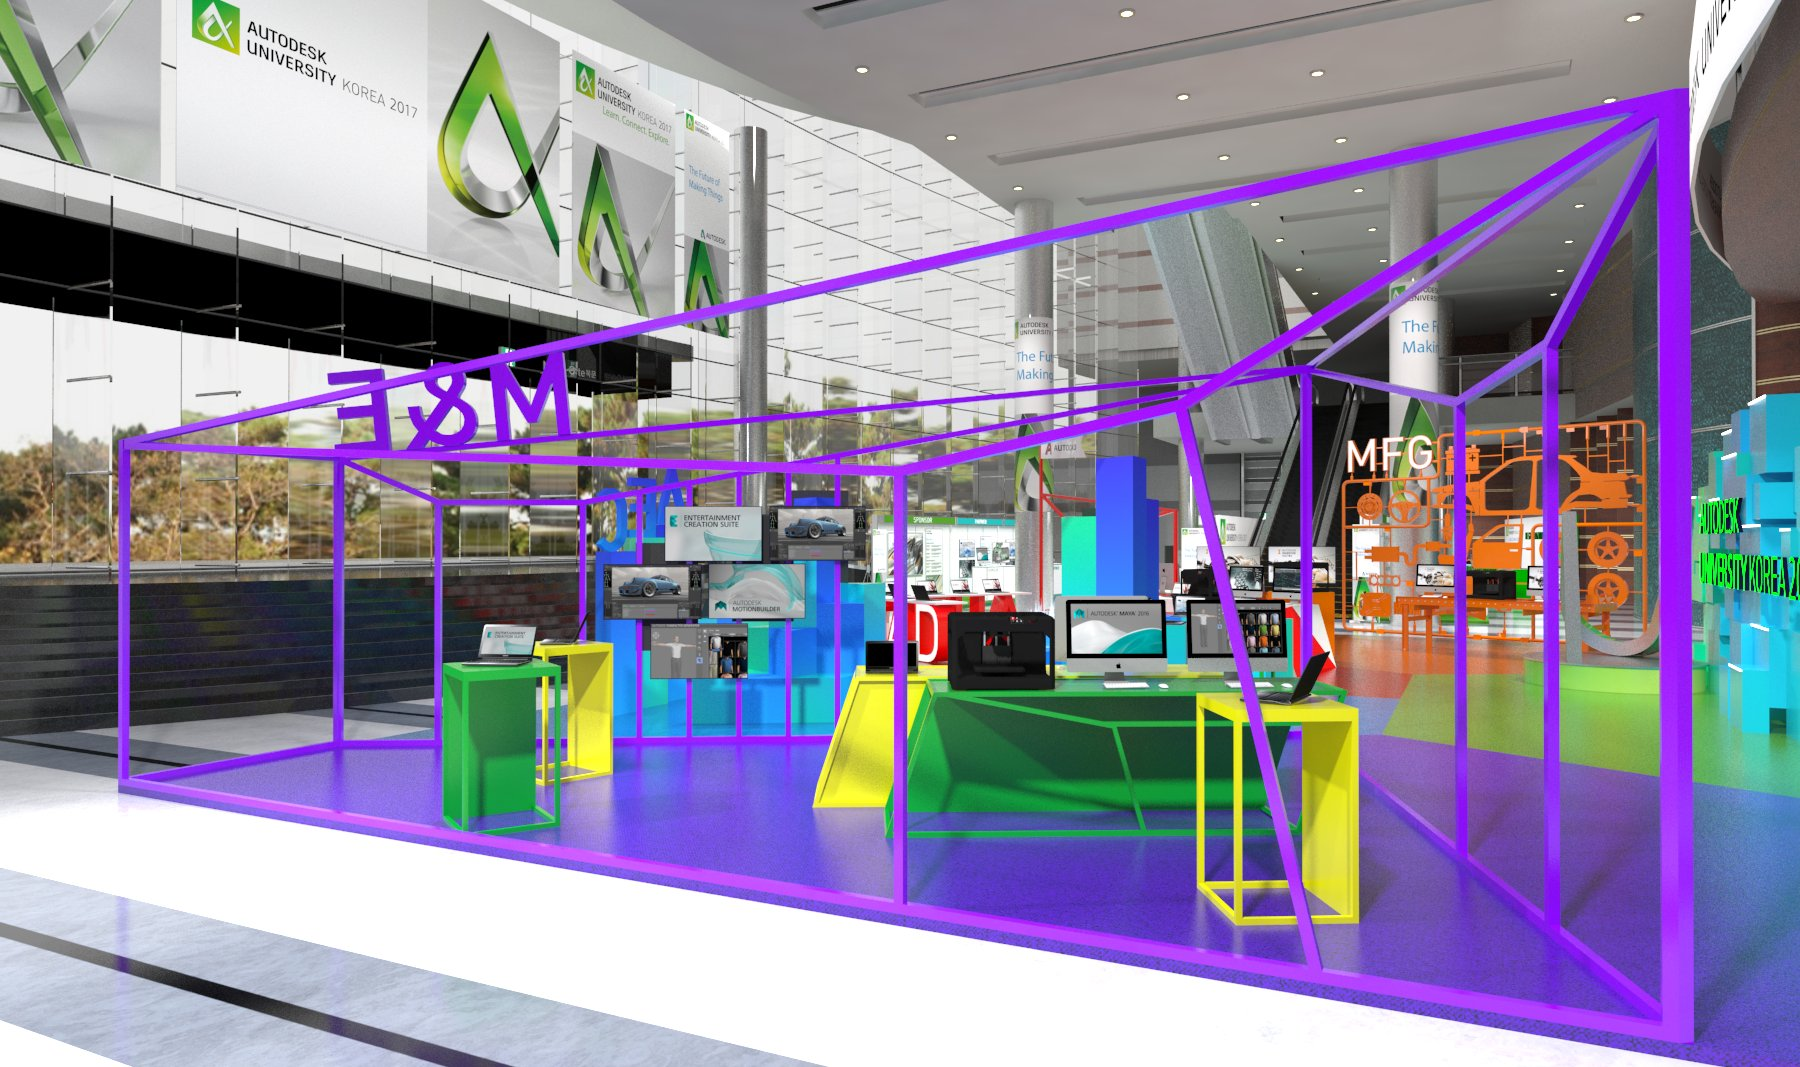 Autodesk University_EX _Rendering_28